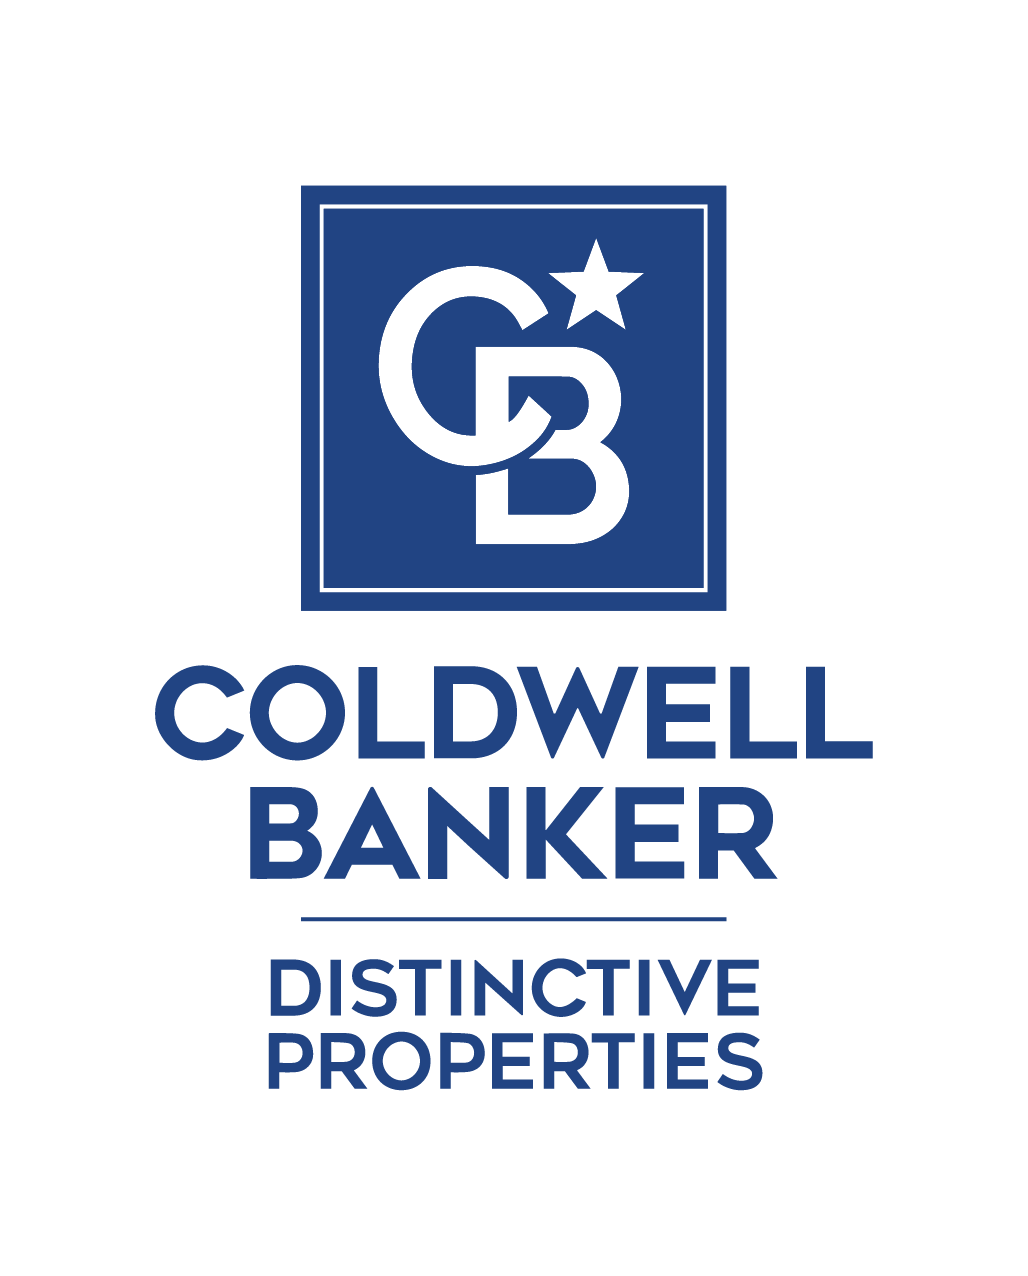 Chris Naro - Coldwell Banker Distinctive Properties